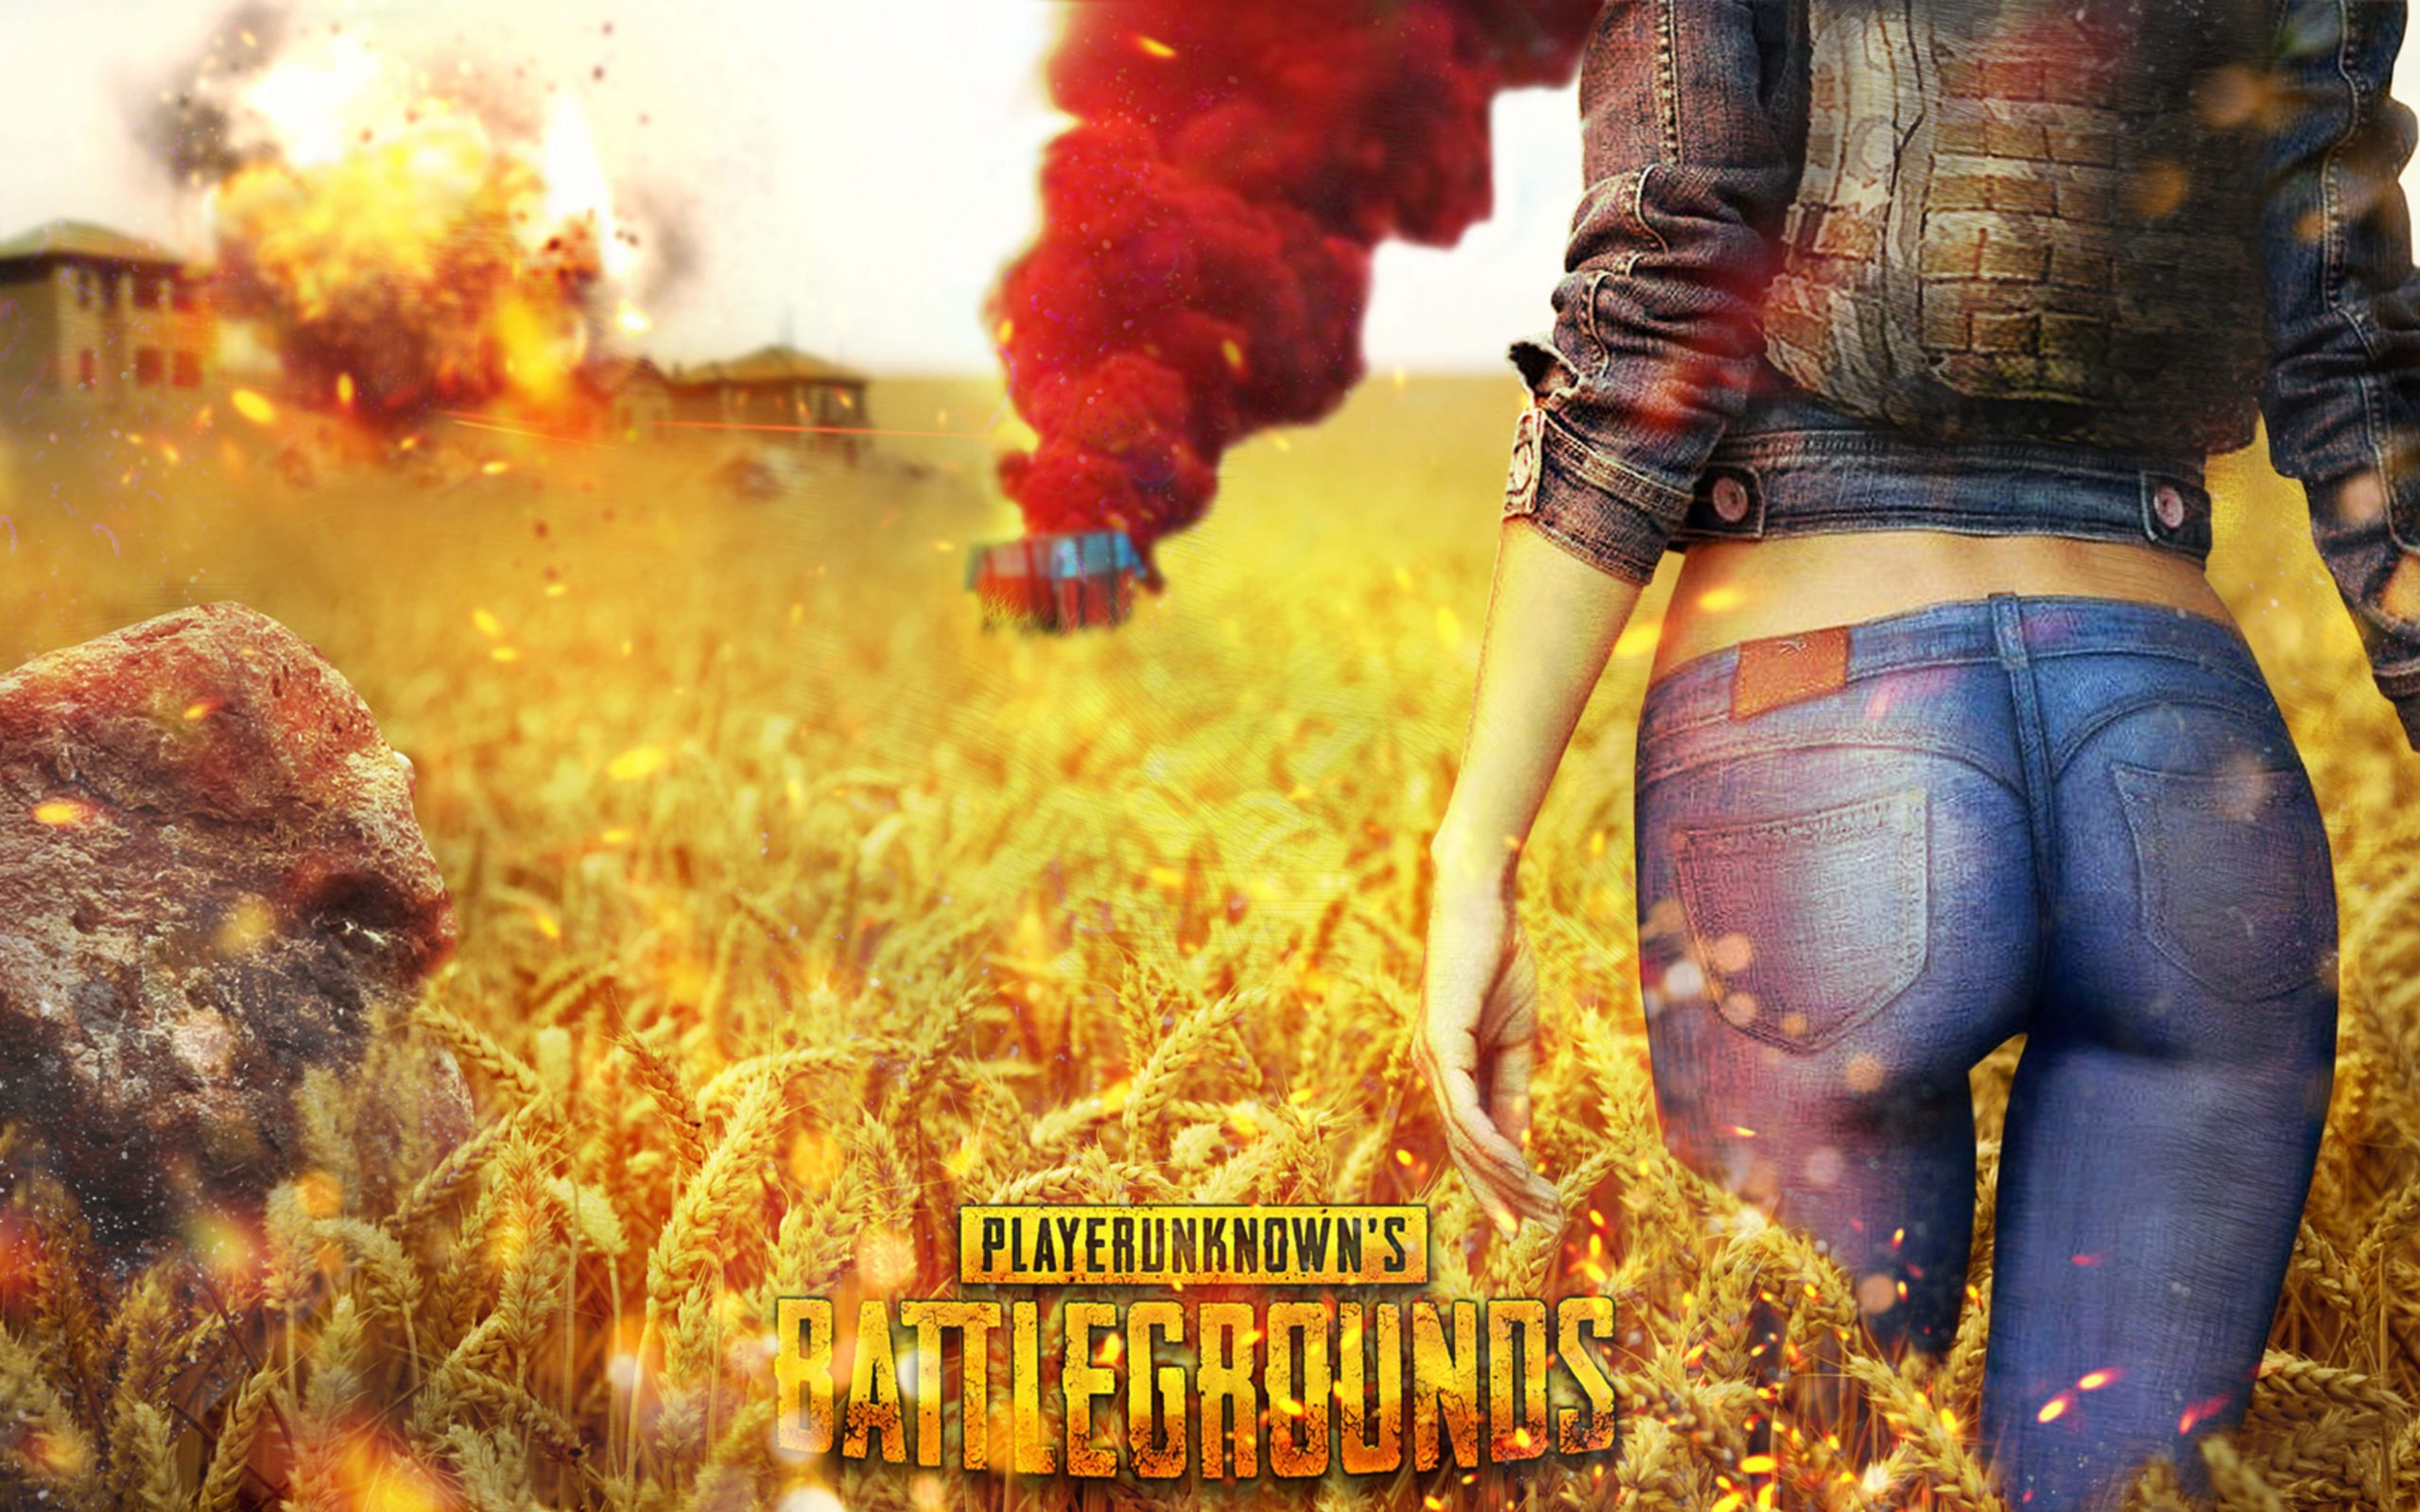 Pubg Ultrawide Wallpaper Playerunknowns Battlegrounds Pubg Cover 4k Wallpaper